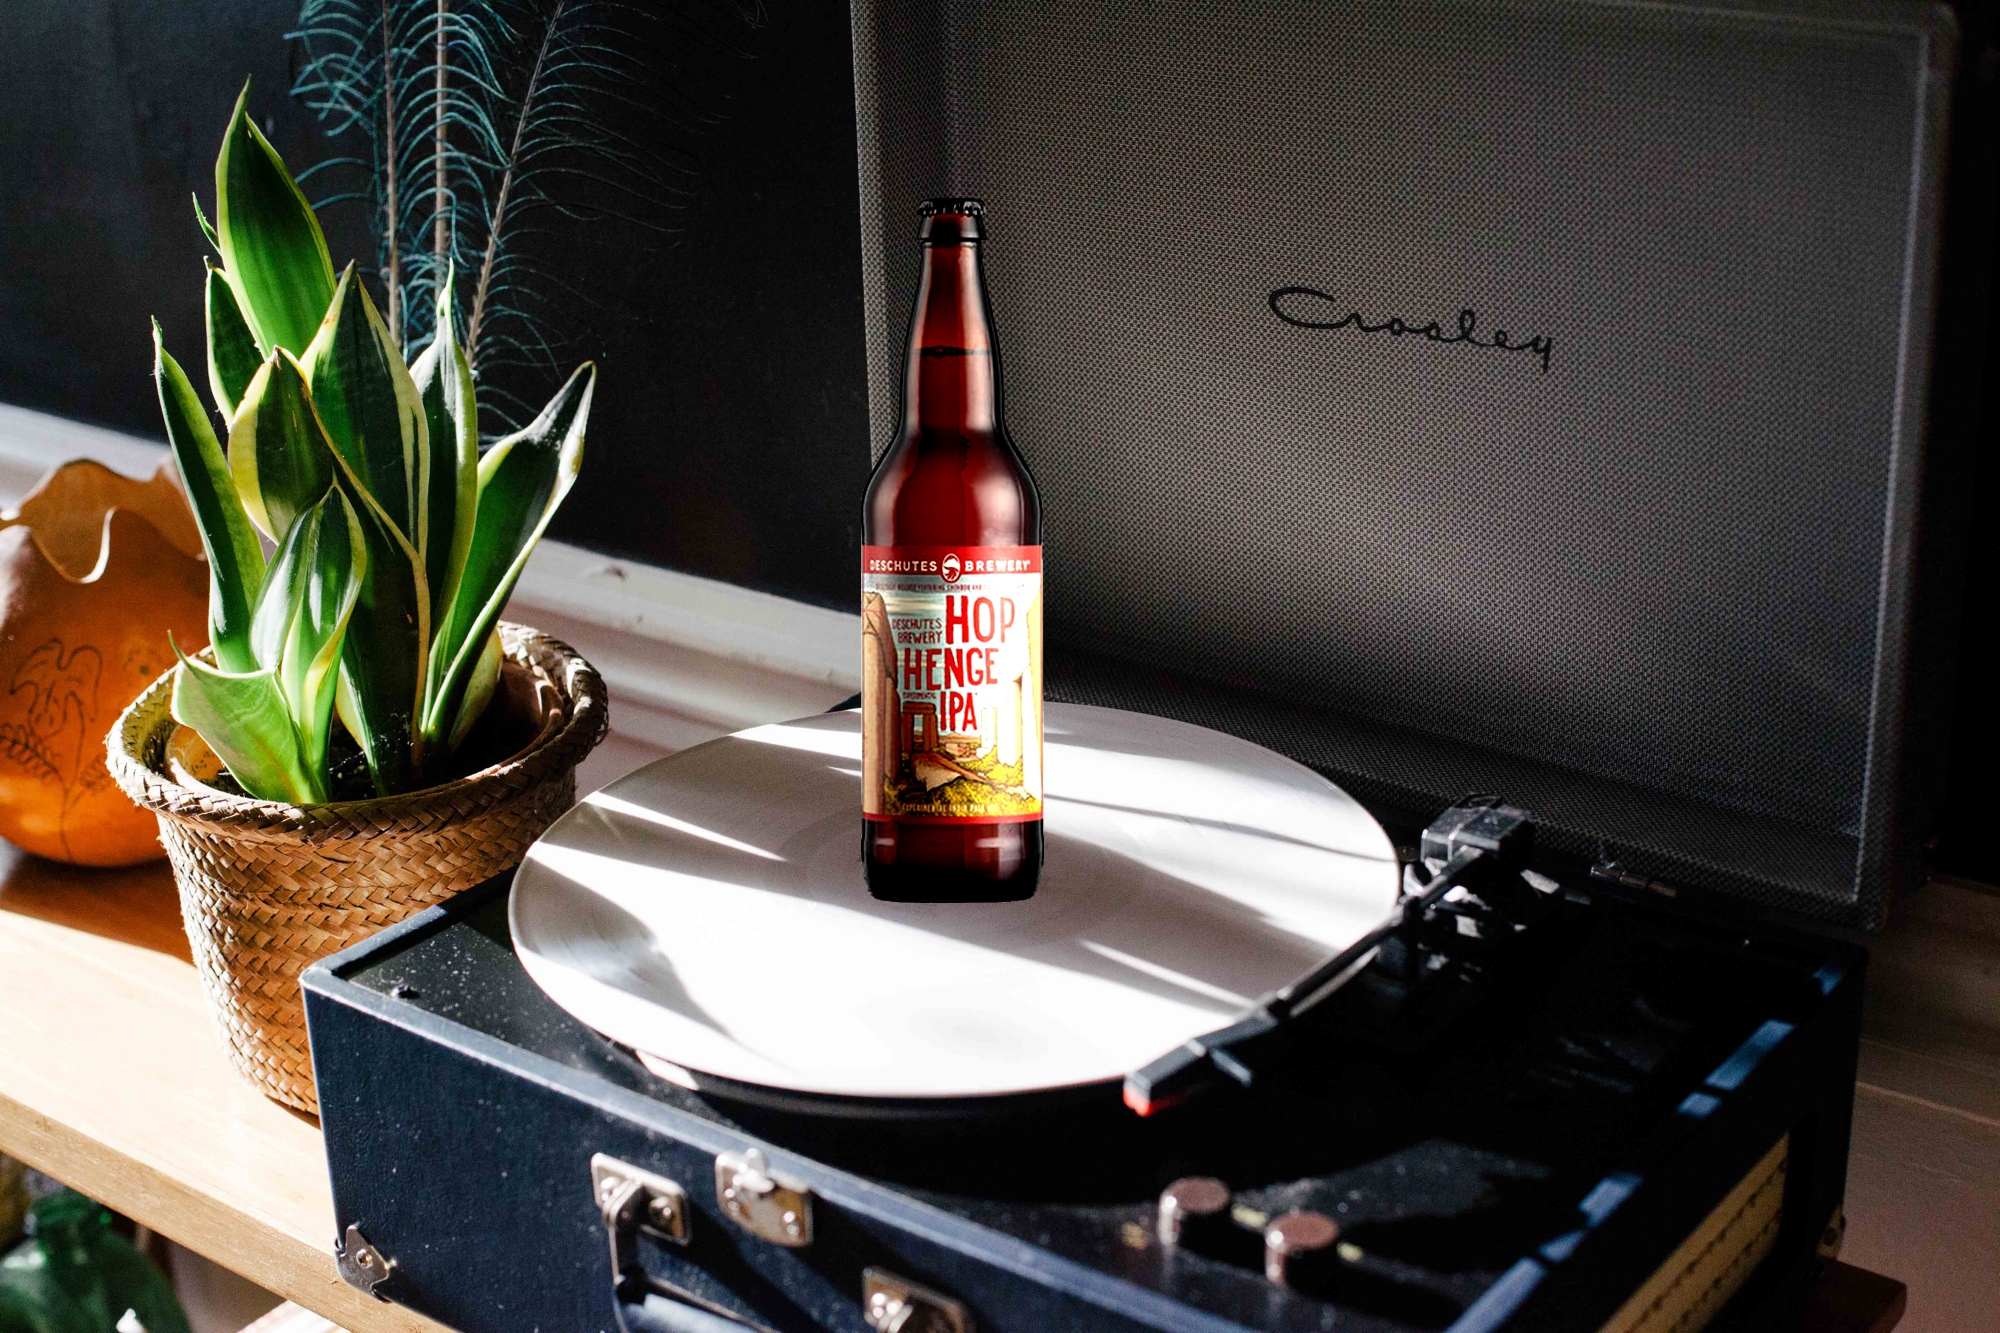 This vinyl subscription service is offering craft beer with every record